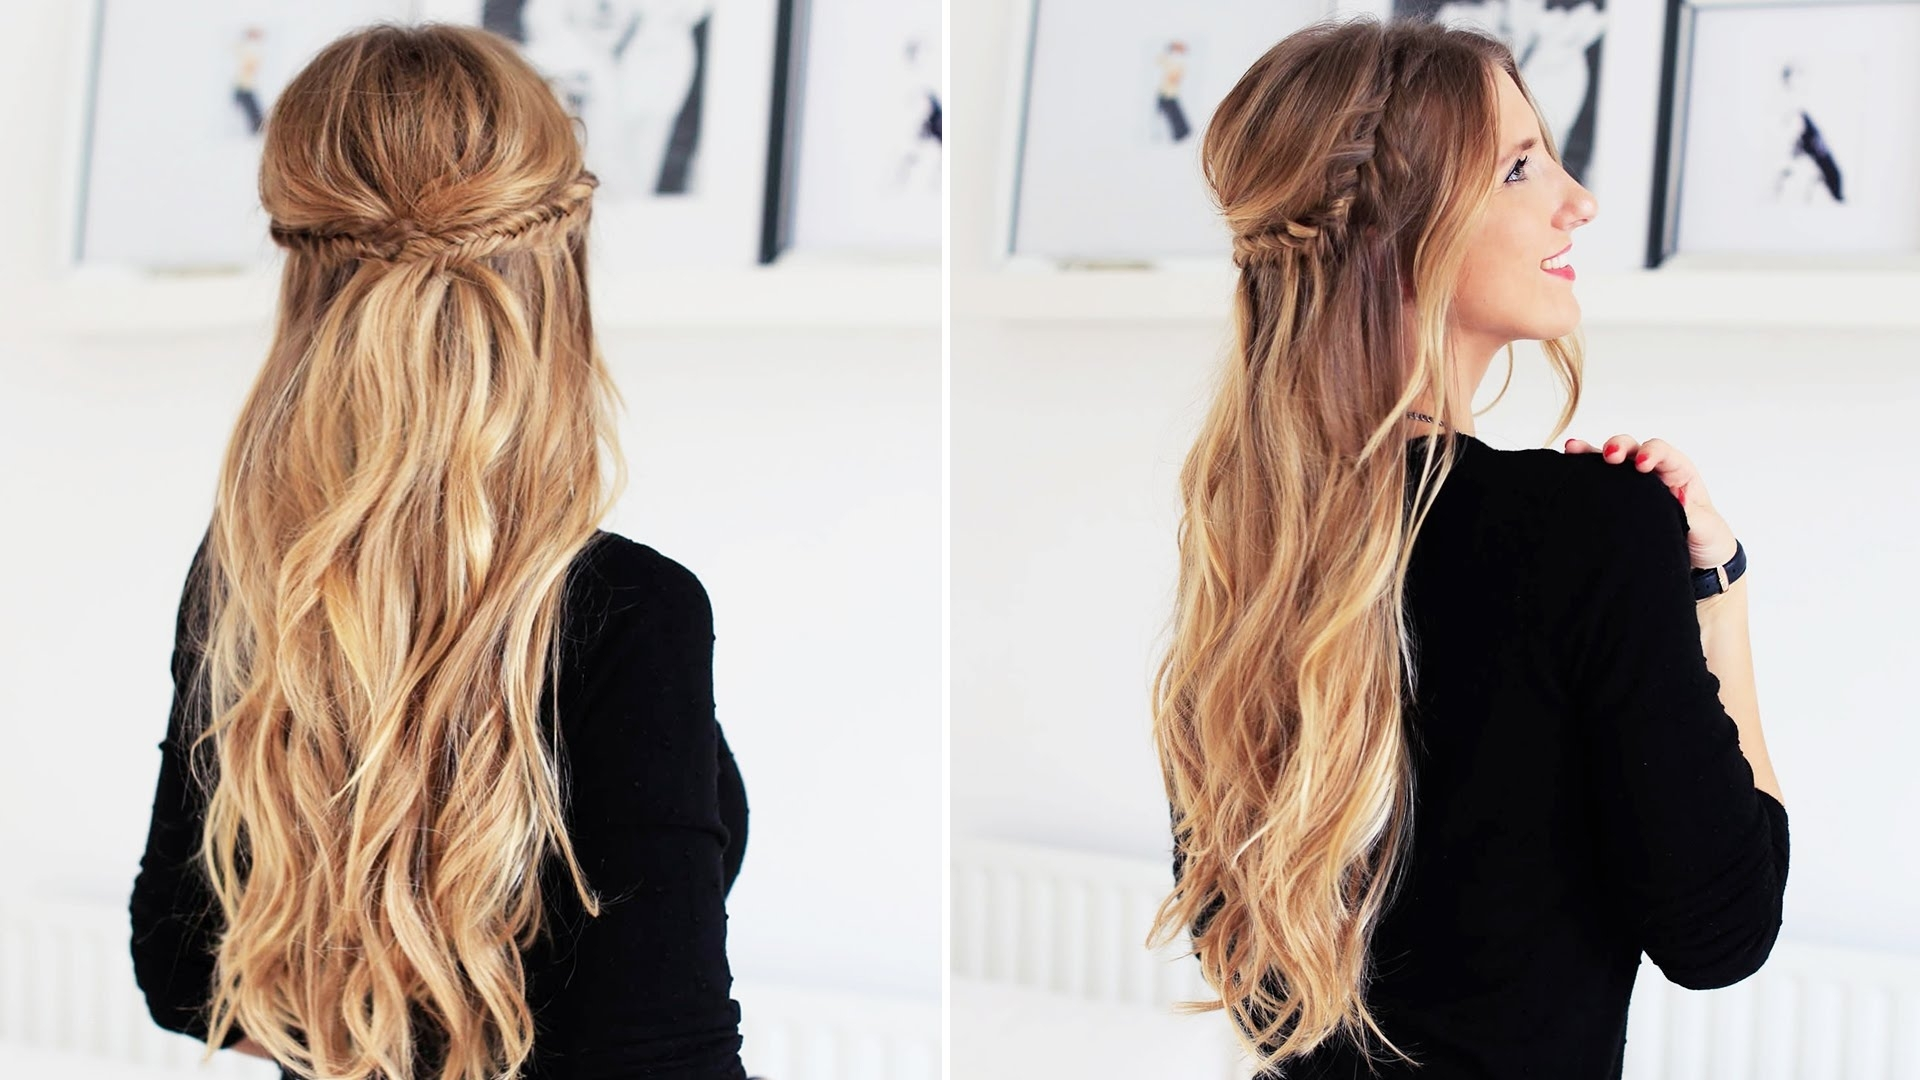 Fishtail Braid Half Updo For Short, Medium, And Long Hair | Luxy In Half Updos For Long Hair (View 3 of 15)